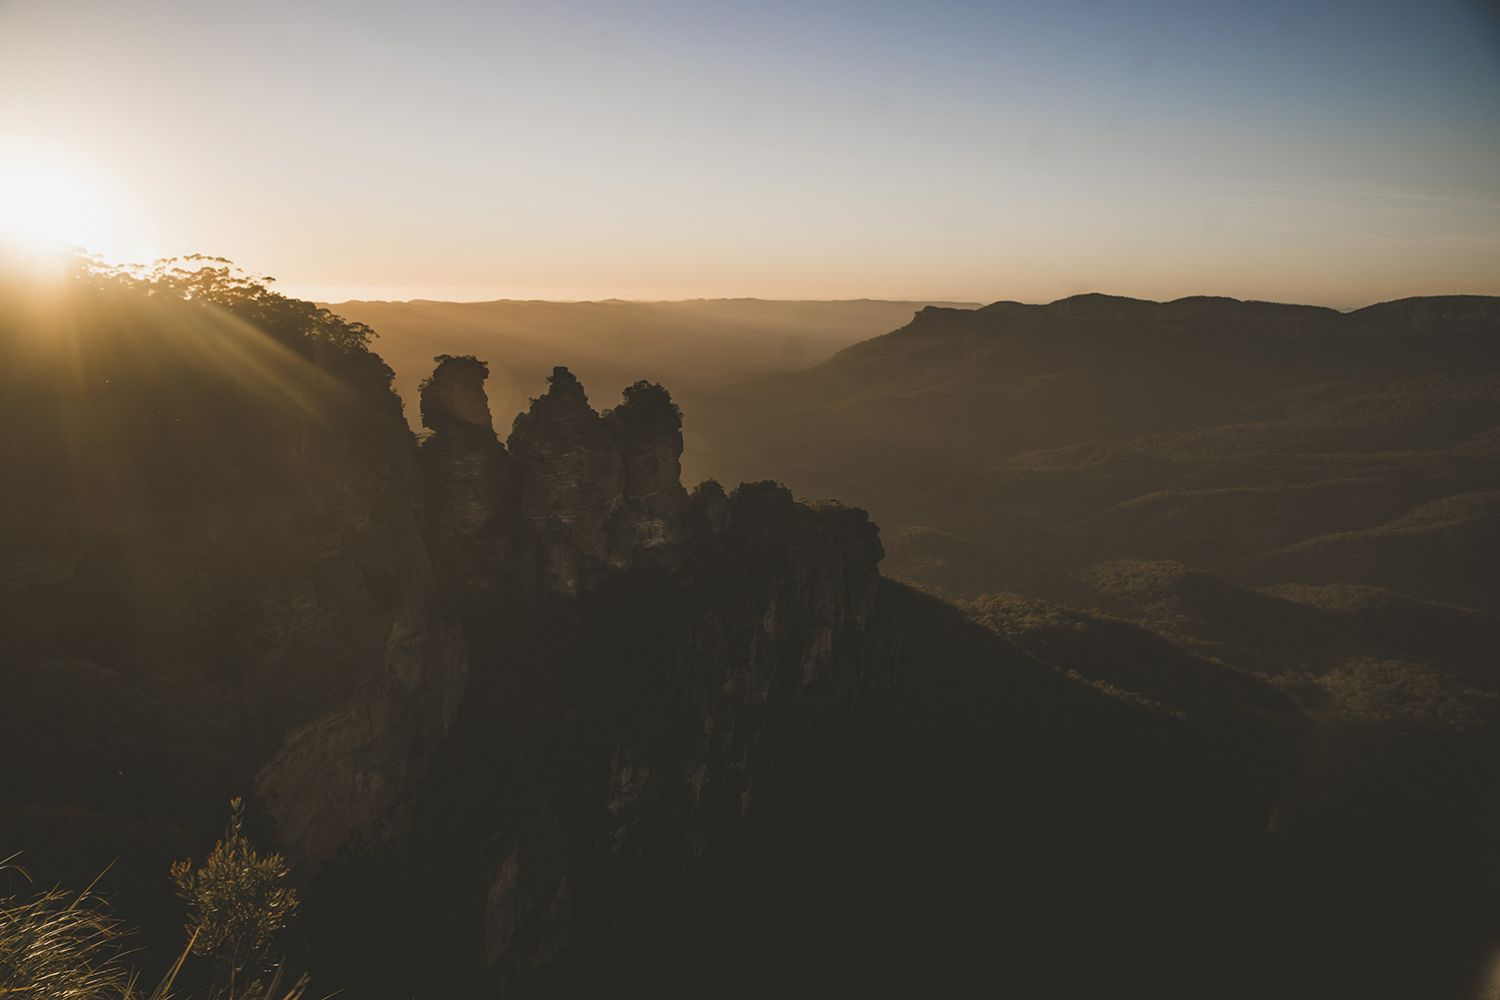 Sun rising over the Three Sisters, Katoomba in the Blue Mountains National Park